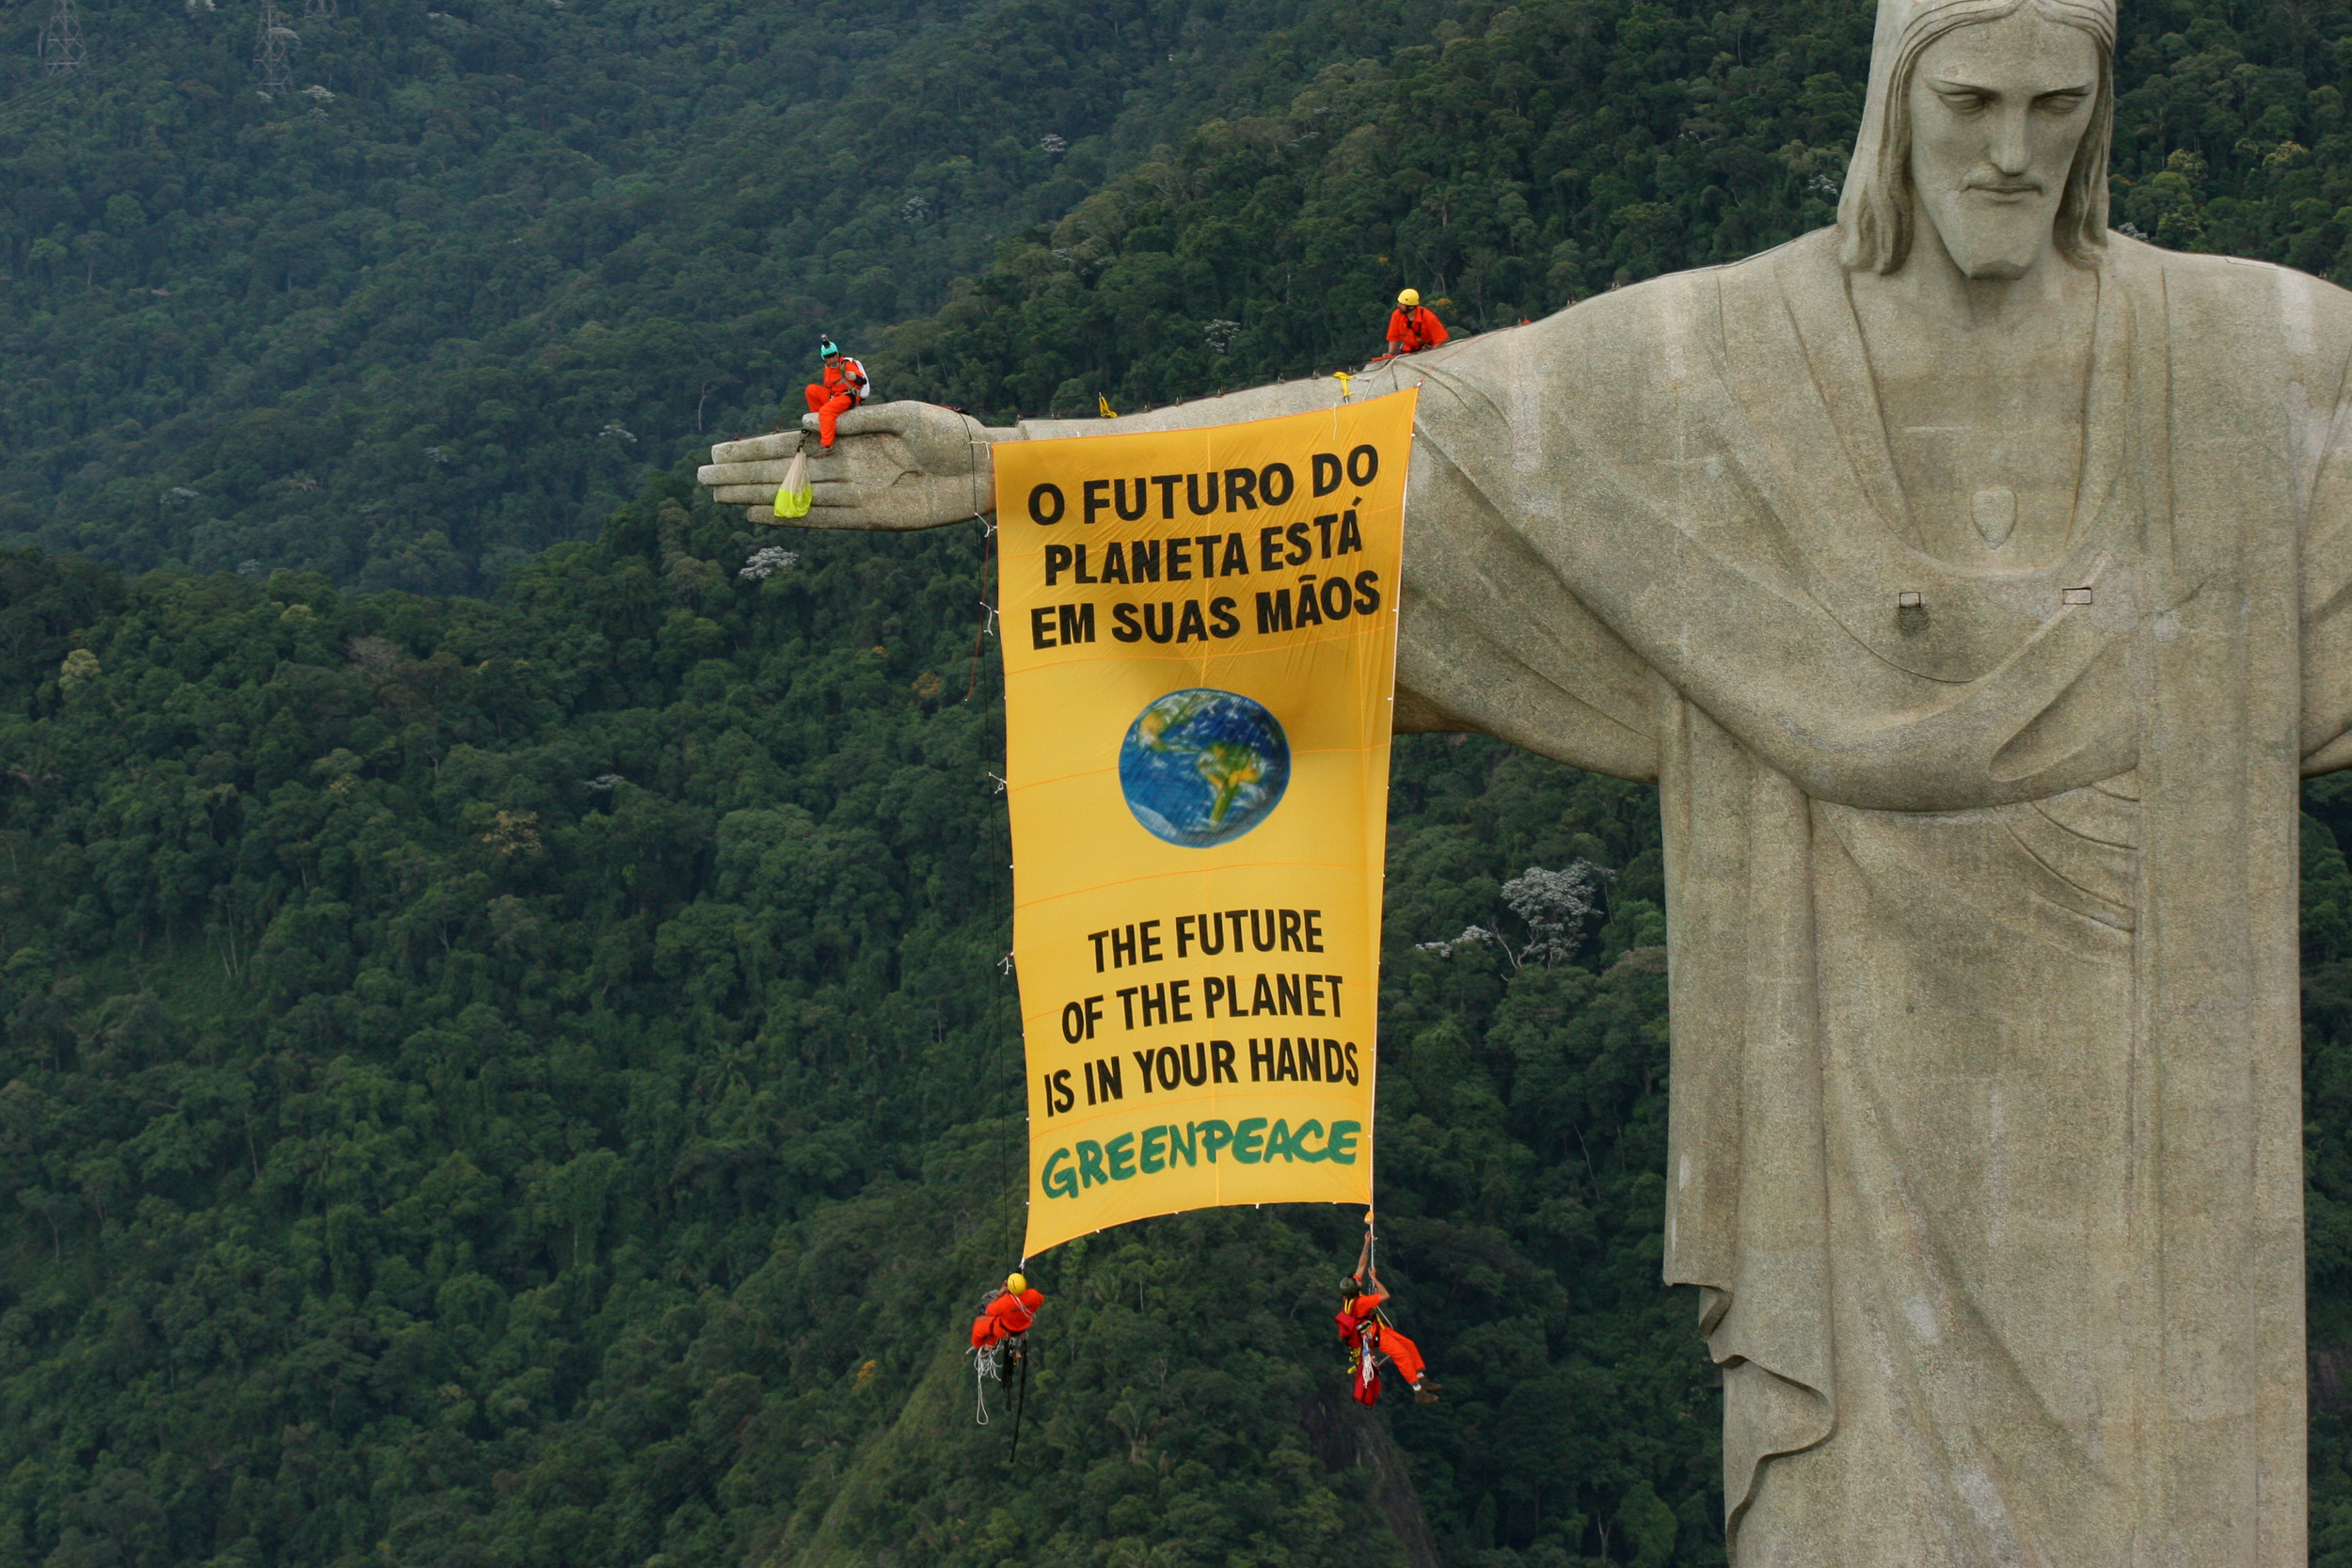 a long thin yellow banner hanging off Christ the Redeemer statue in Brazil, with four activists in red at each corner. The statue is high above a green forested background